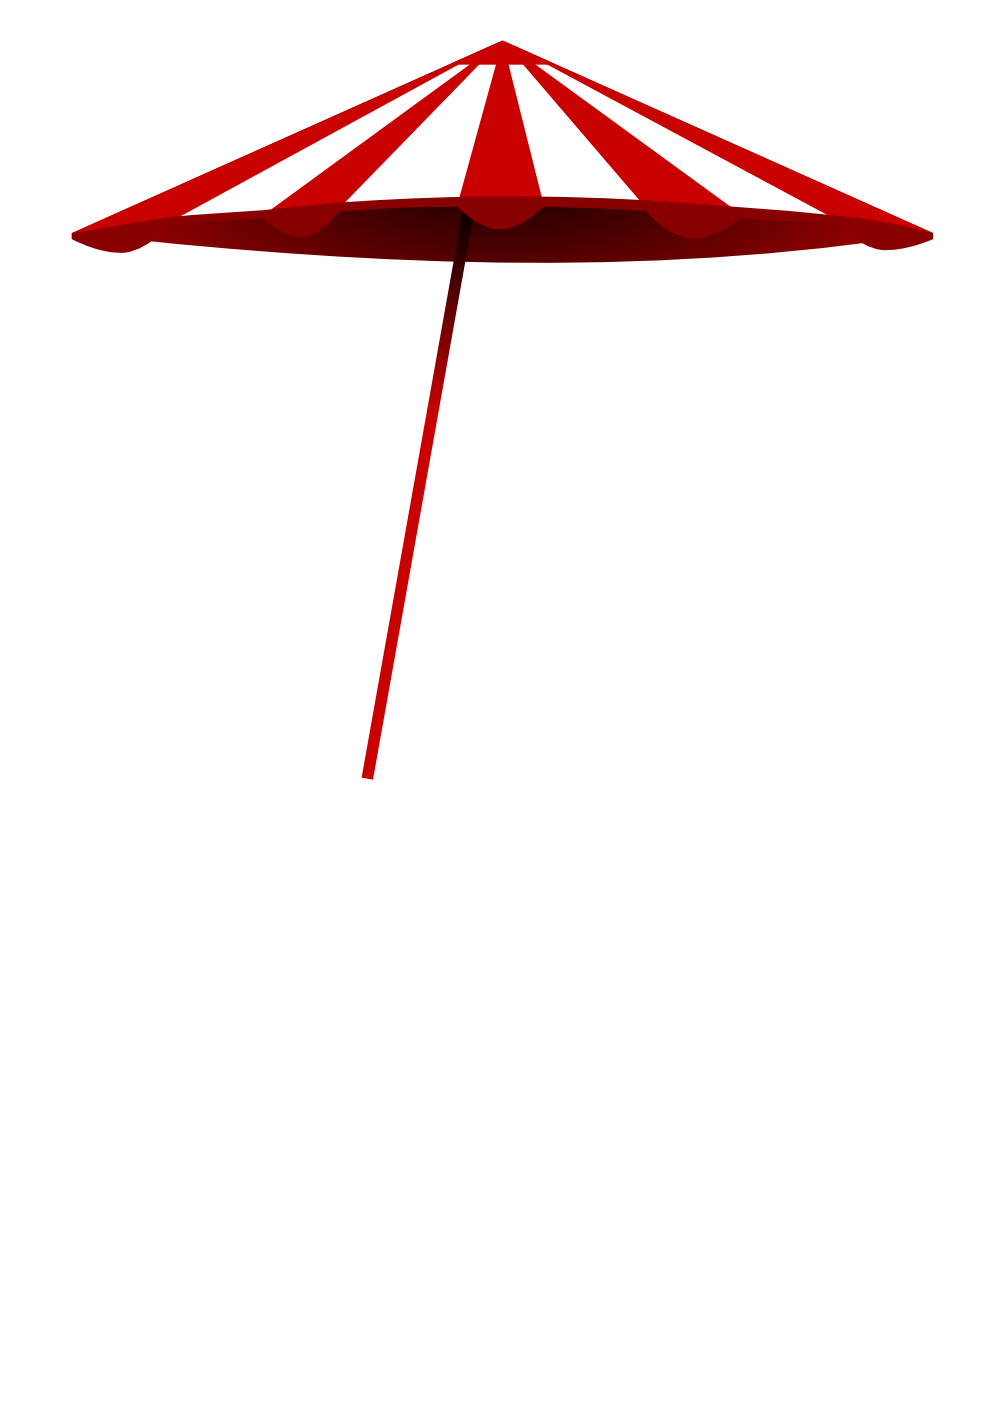 Onlinelabels clip art red. Clipart umbrella template